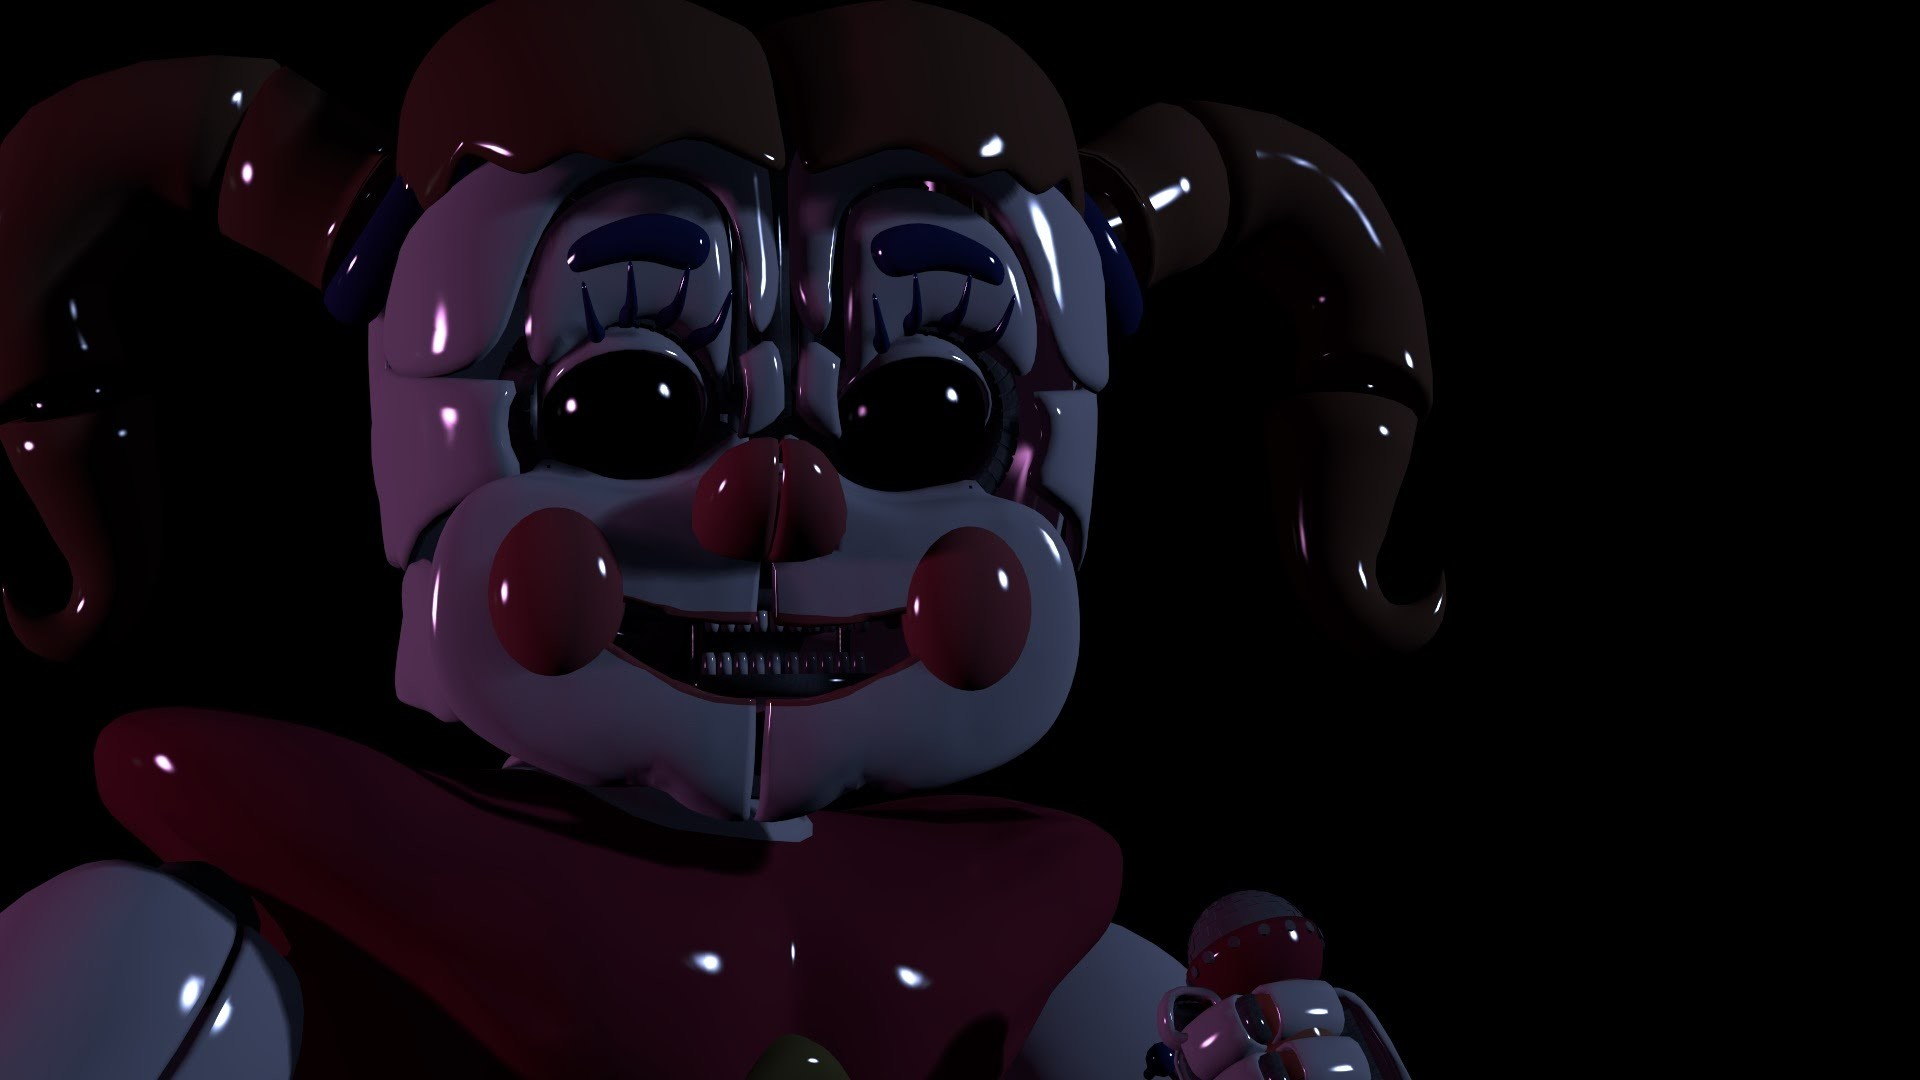 Res: 1920x1080, [FNAF SFM] Baby's Voices - YouTube